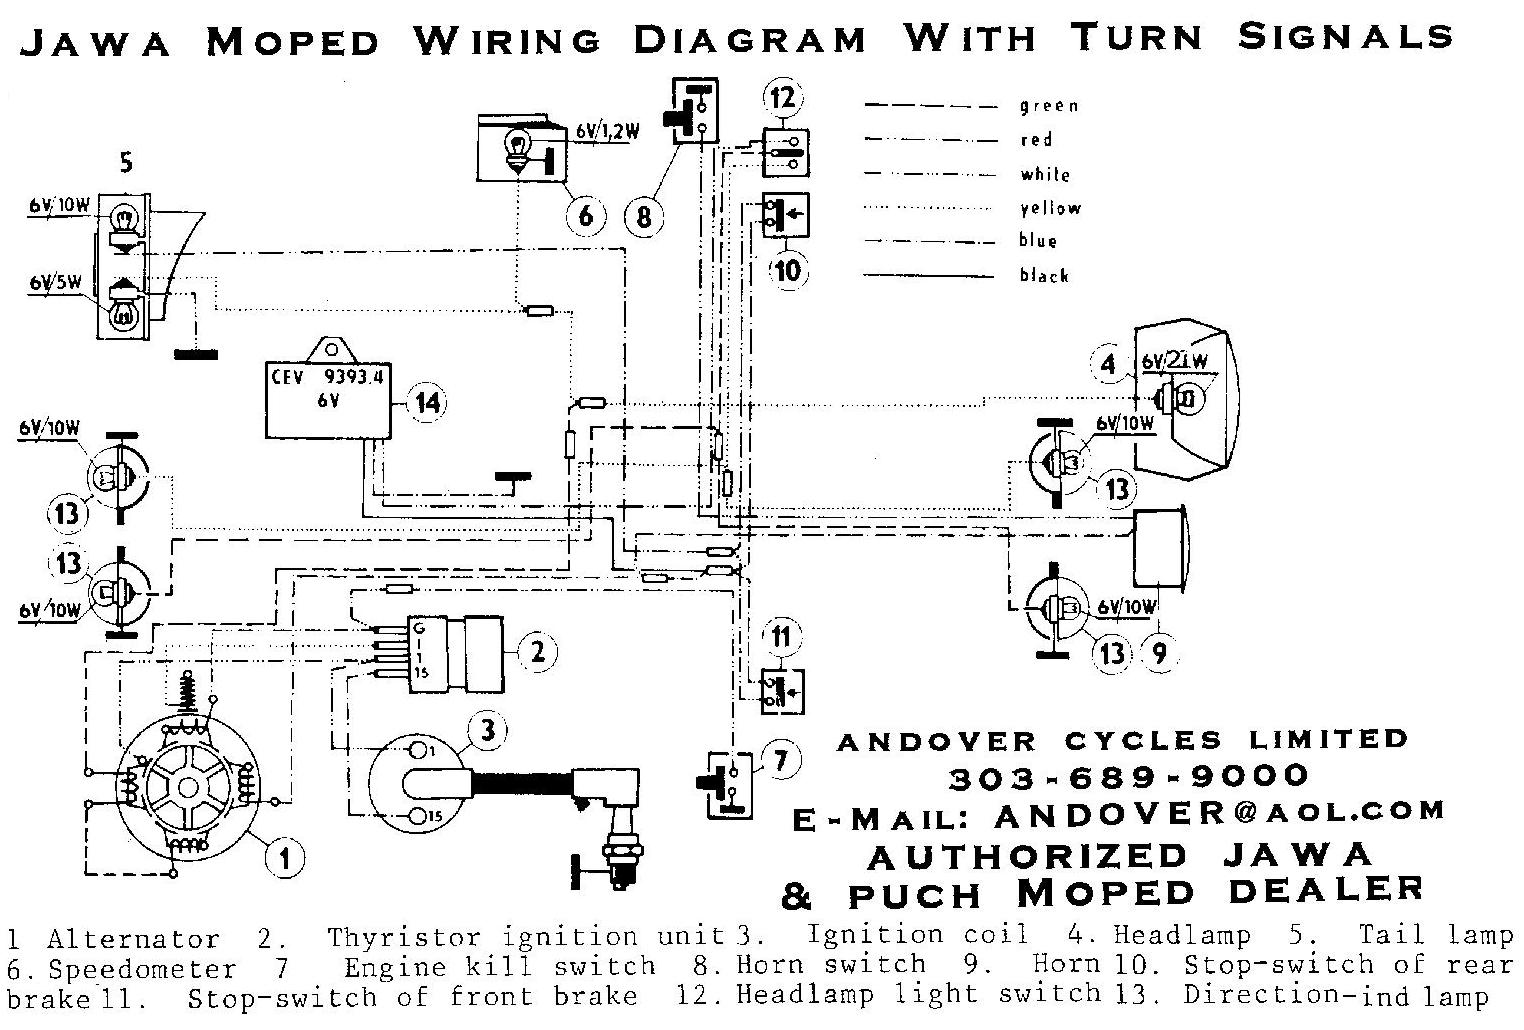 Jawa-with-Blinkers Jawa Moped Wiring Diagram on puch moped wiring diagram, tomos moped wiring diagram, kinetic moped wiring diagram, sachs moped wiring diagram,